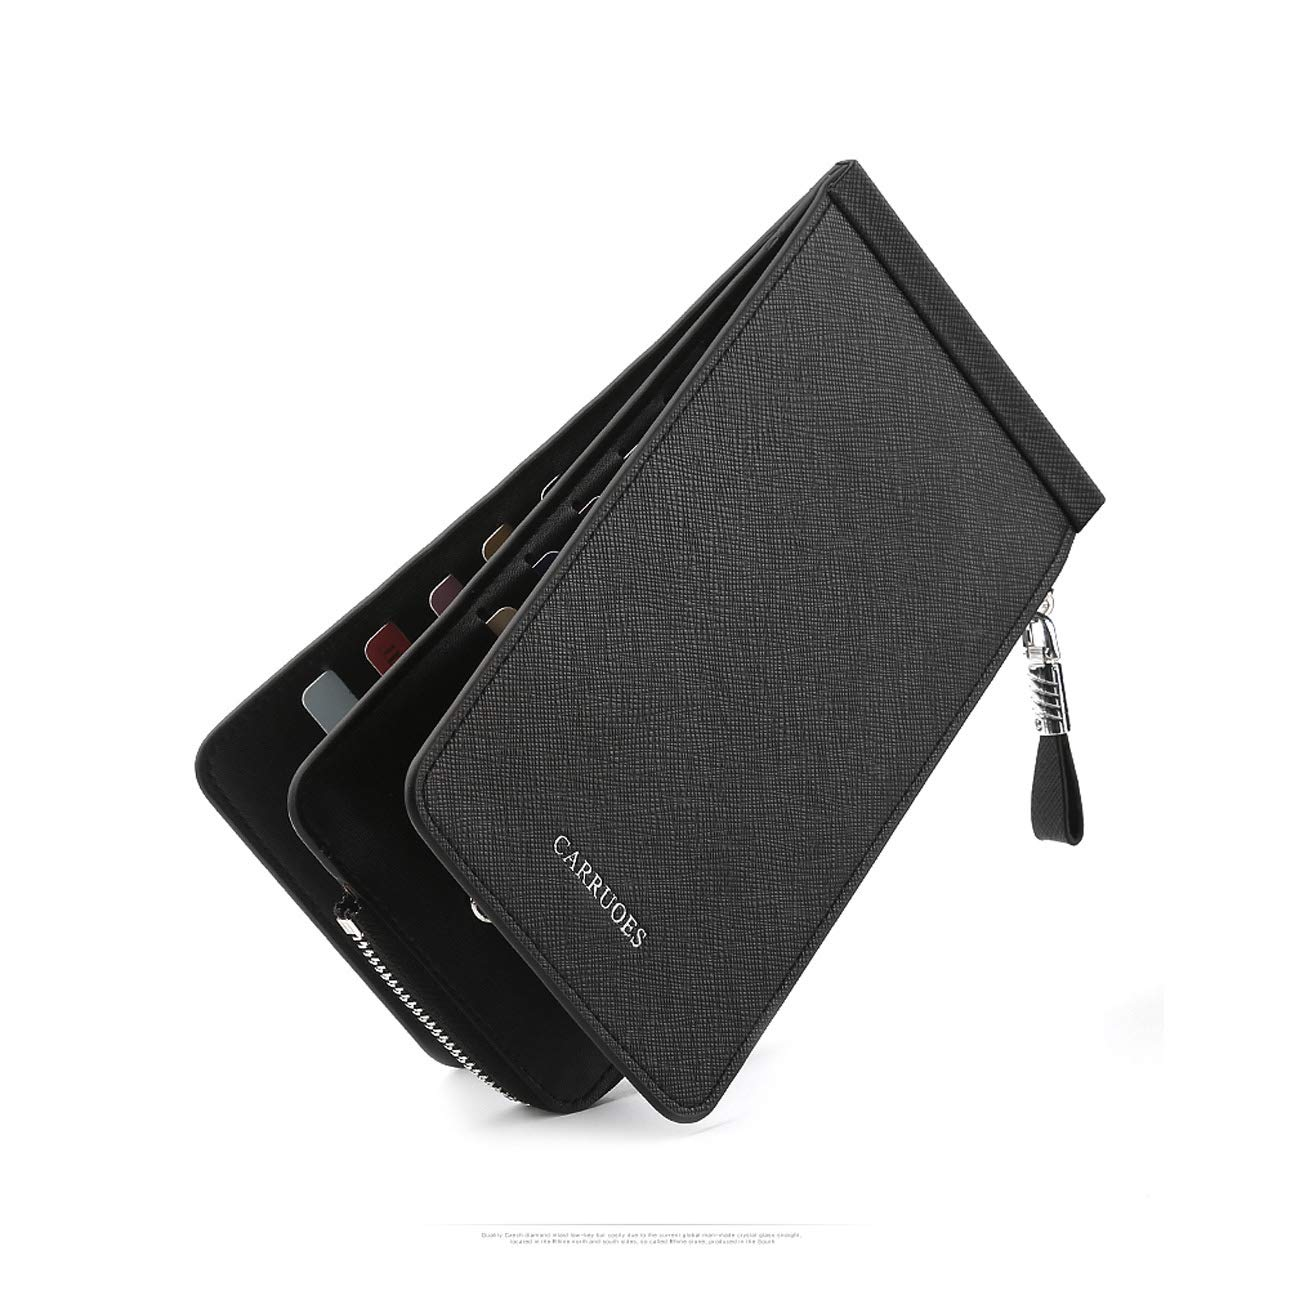 Kalmar Mens Stealth Mode Blocking Leather Long Wallets Bifold Wallet , Leather RFID Blocking Bifold Wallet with Zipper, Best Gift Extra Capacity Travel Wallet Color : Black